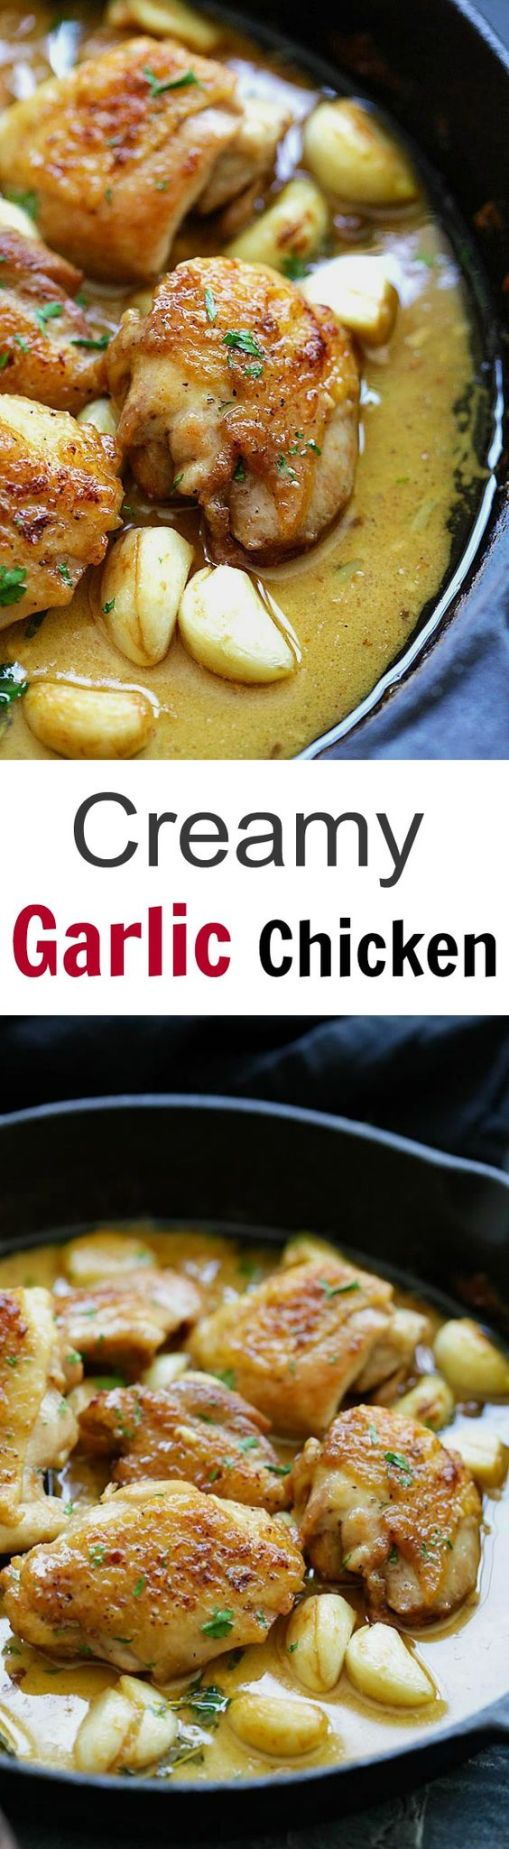 chicken-in-garlic-sauce